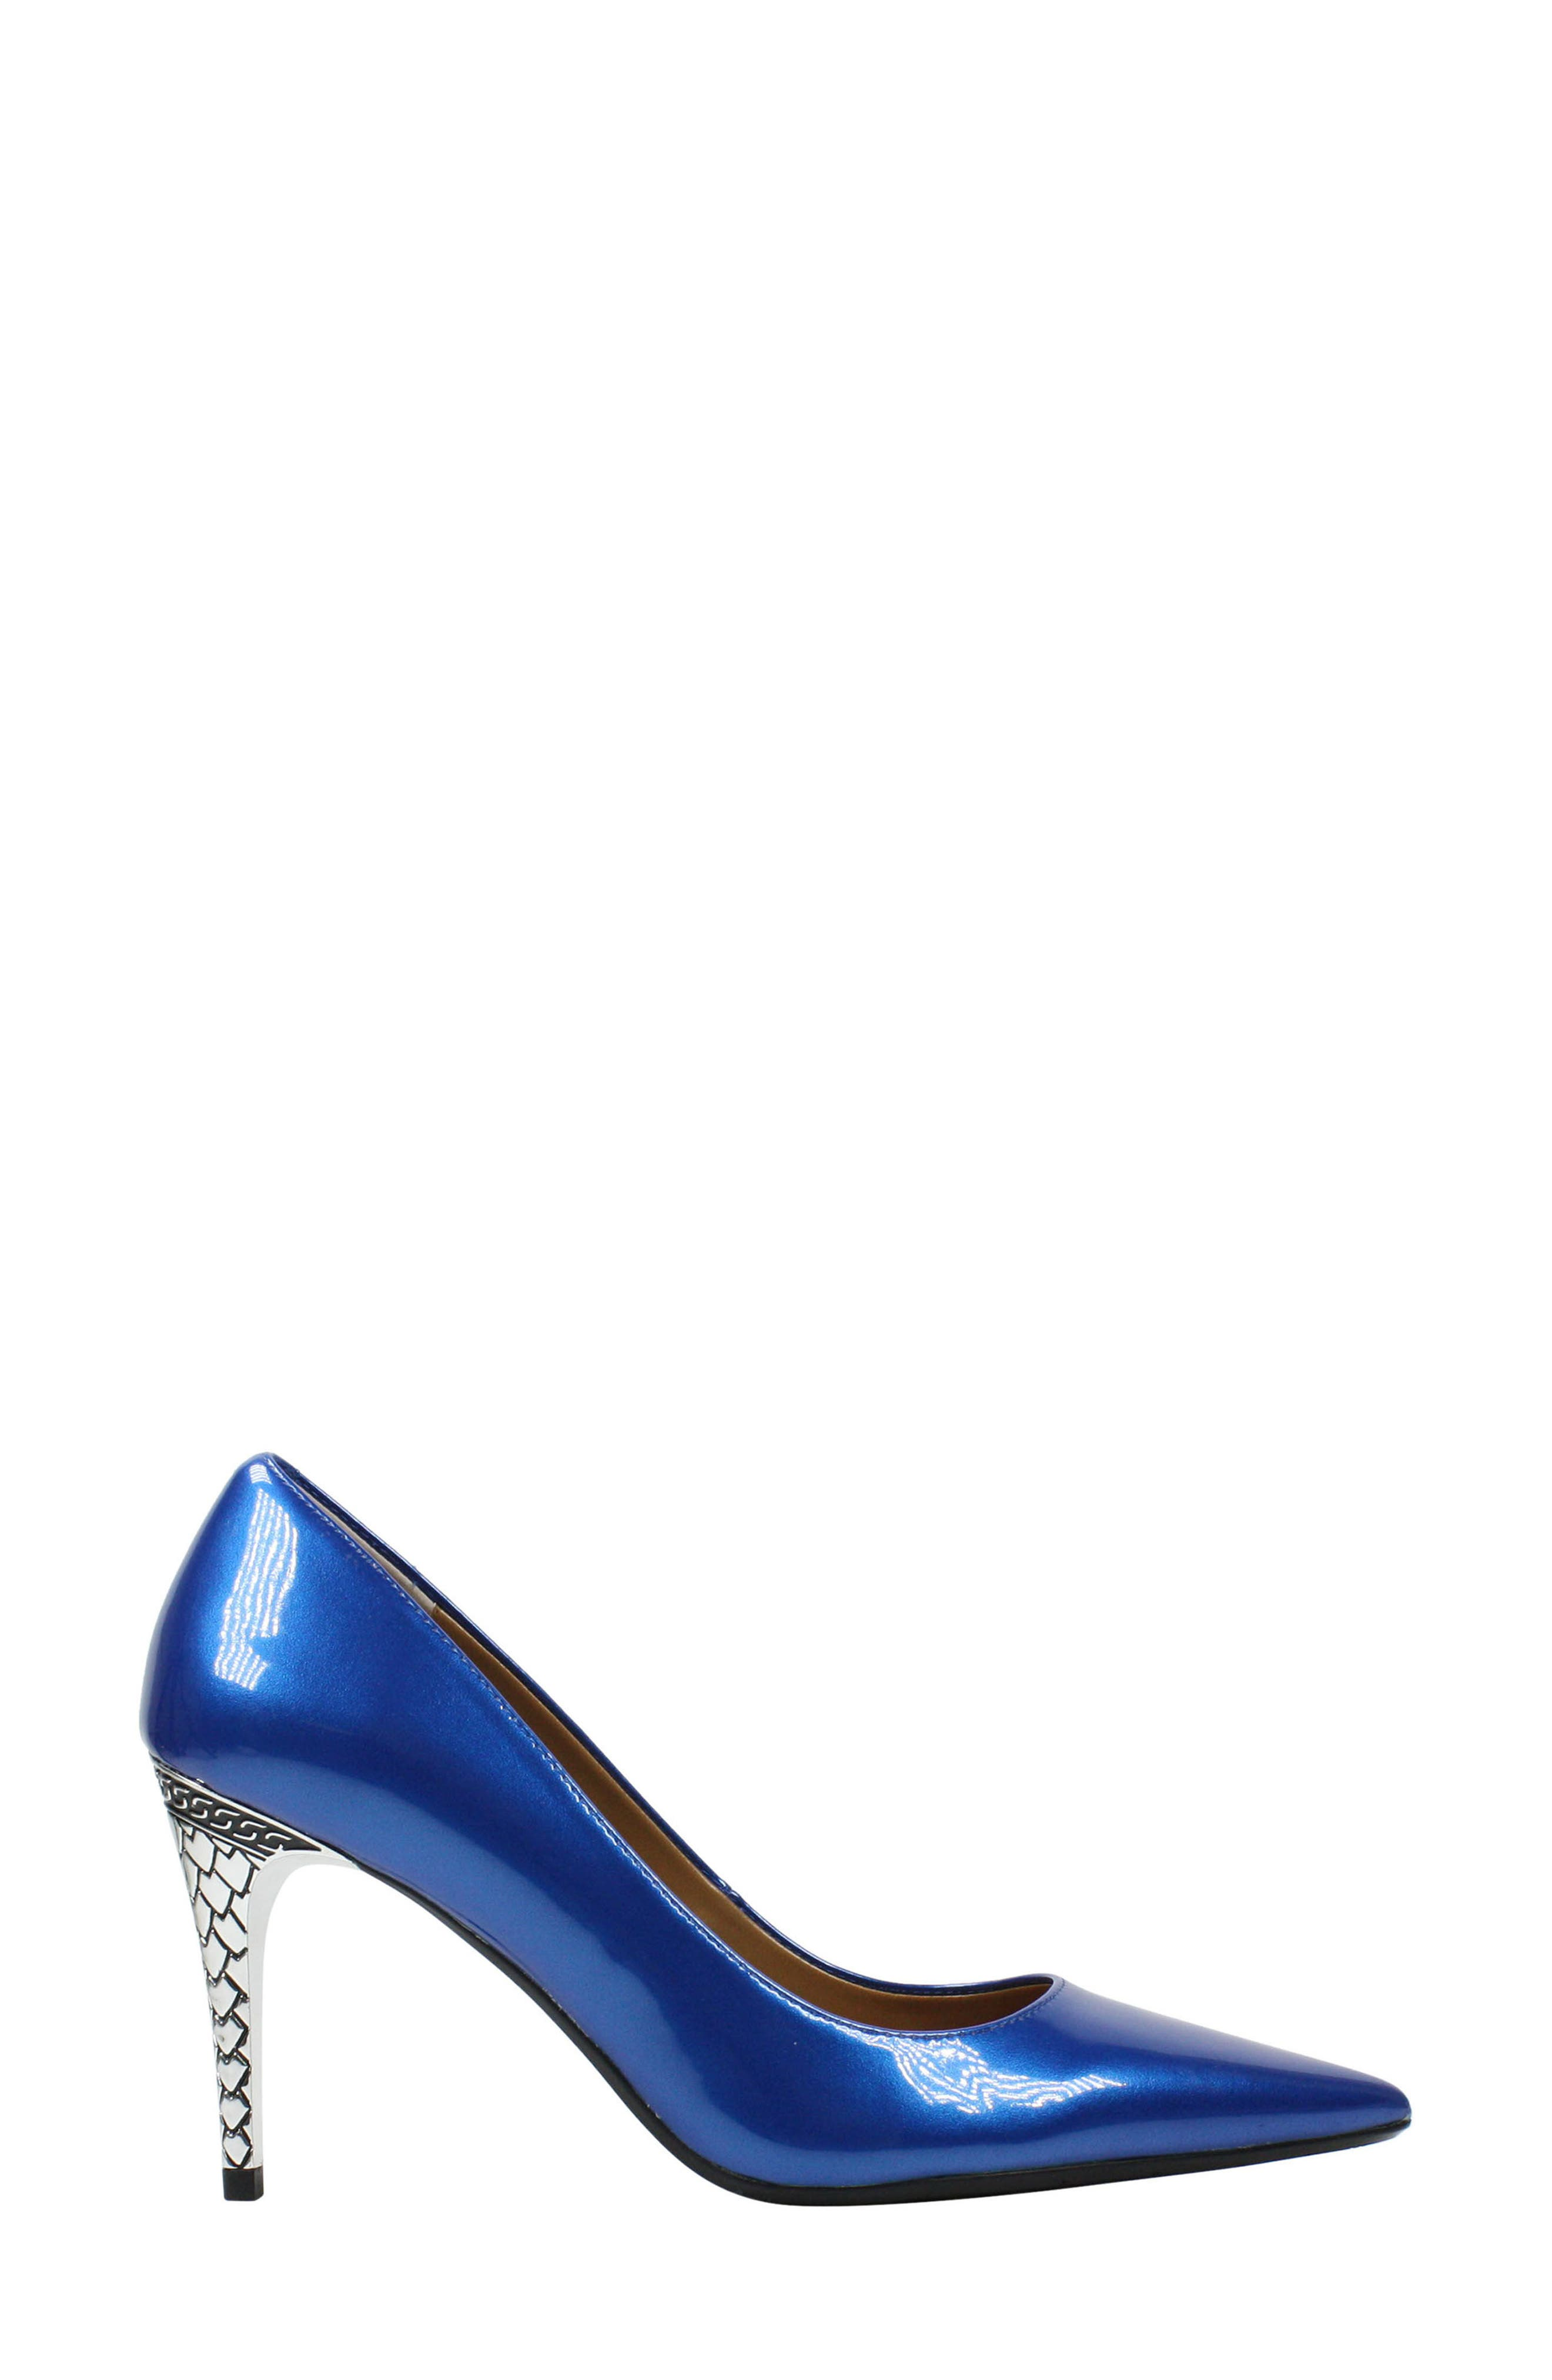 'Maressa' Pointy Toe Pump,                             Alternate thumbnail 3, color,                             Blue Patent